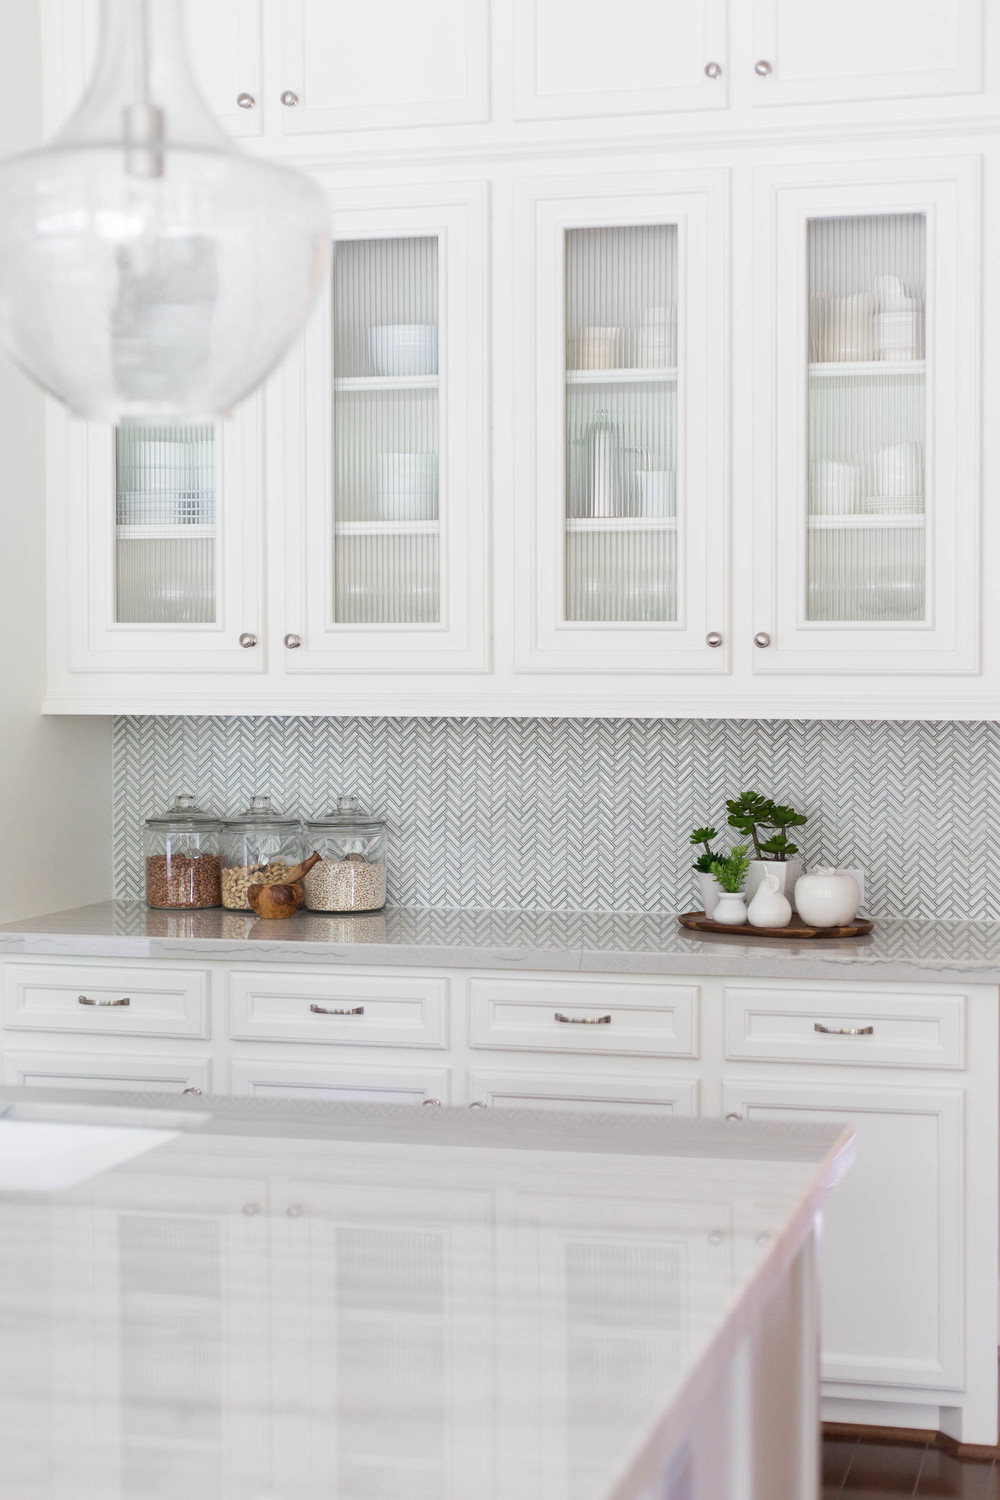 Kitchen Remodel - Carla Aston, Designer - Tori Aston, Photographer